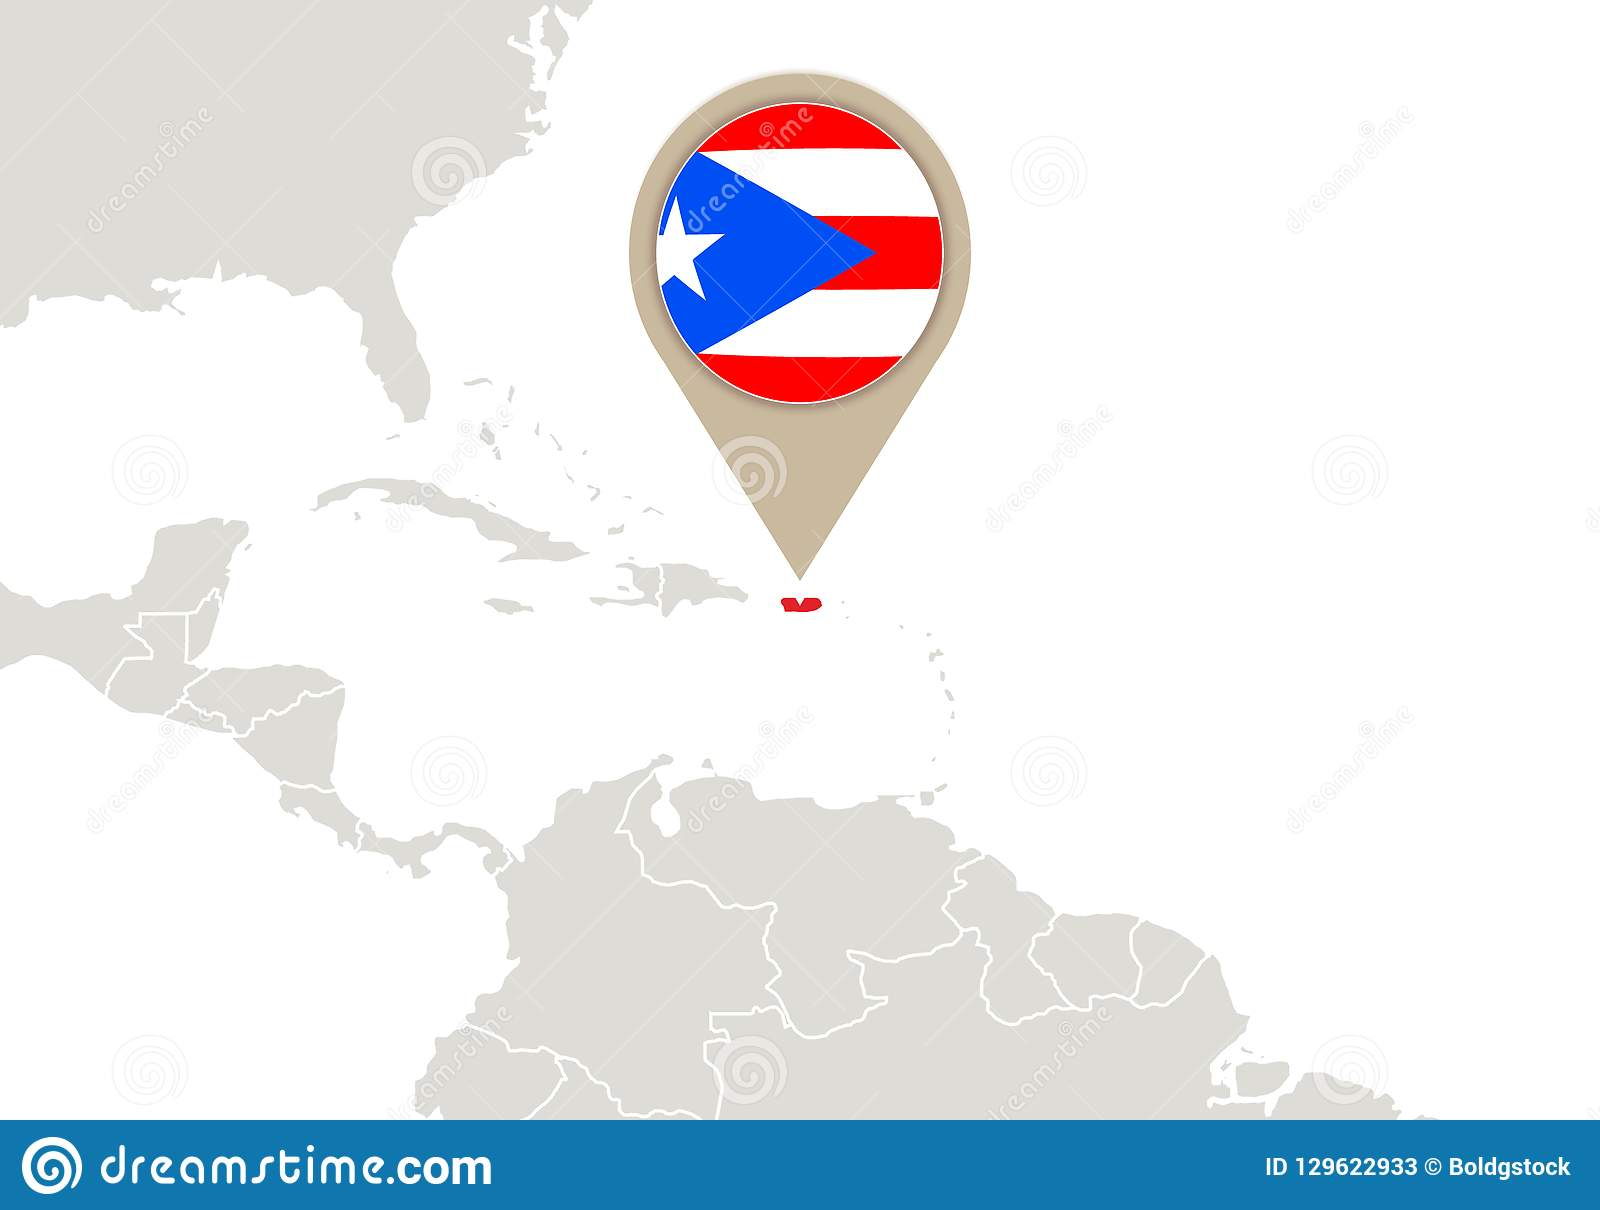 Puerto Rico on World map stock vector. Illustration of rico - 129622933